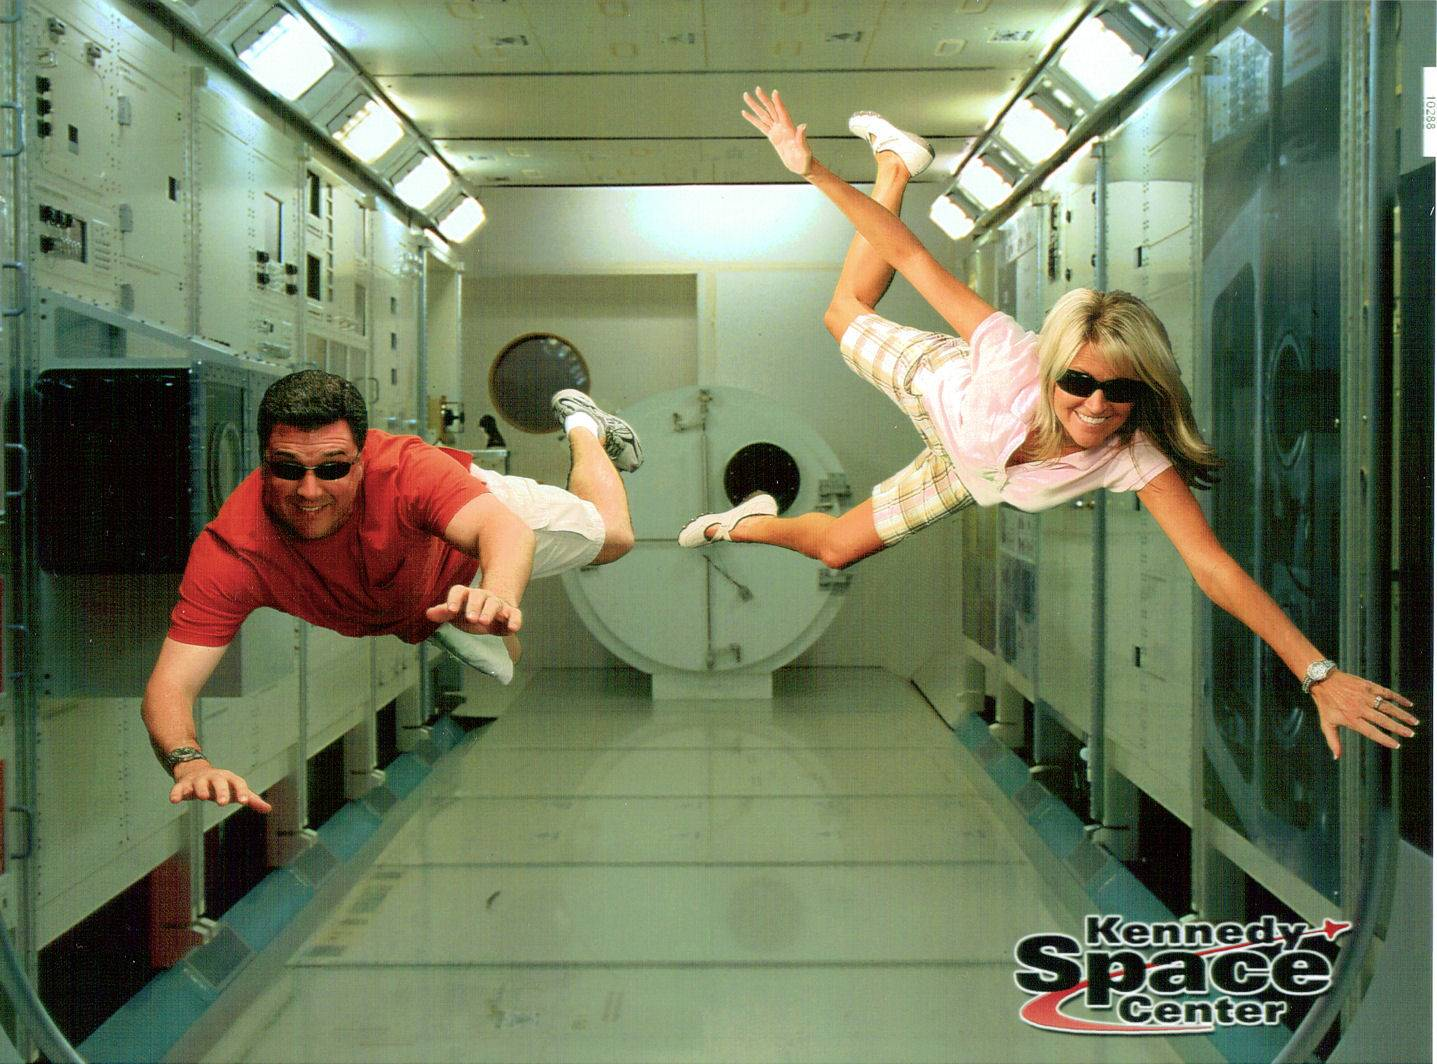 Flying at the Kennedy Space Center